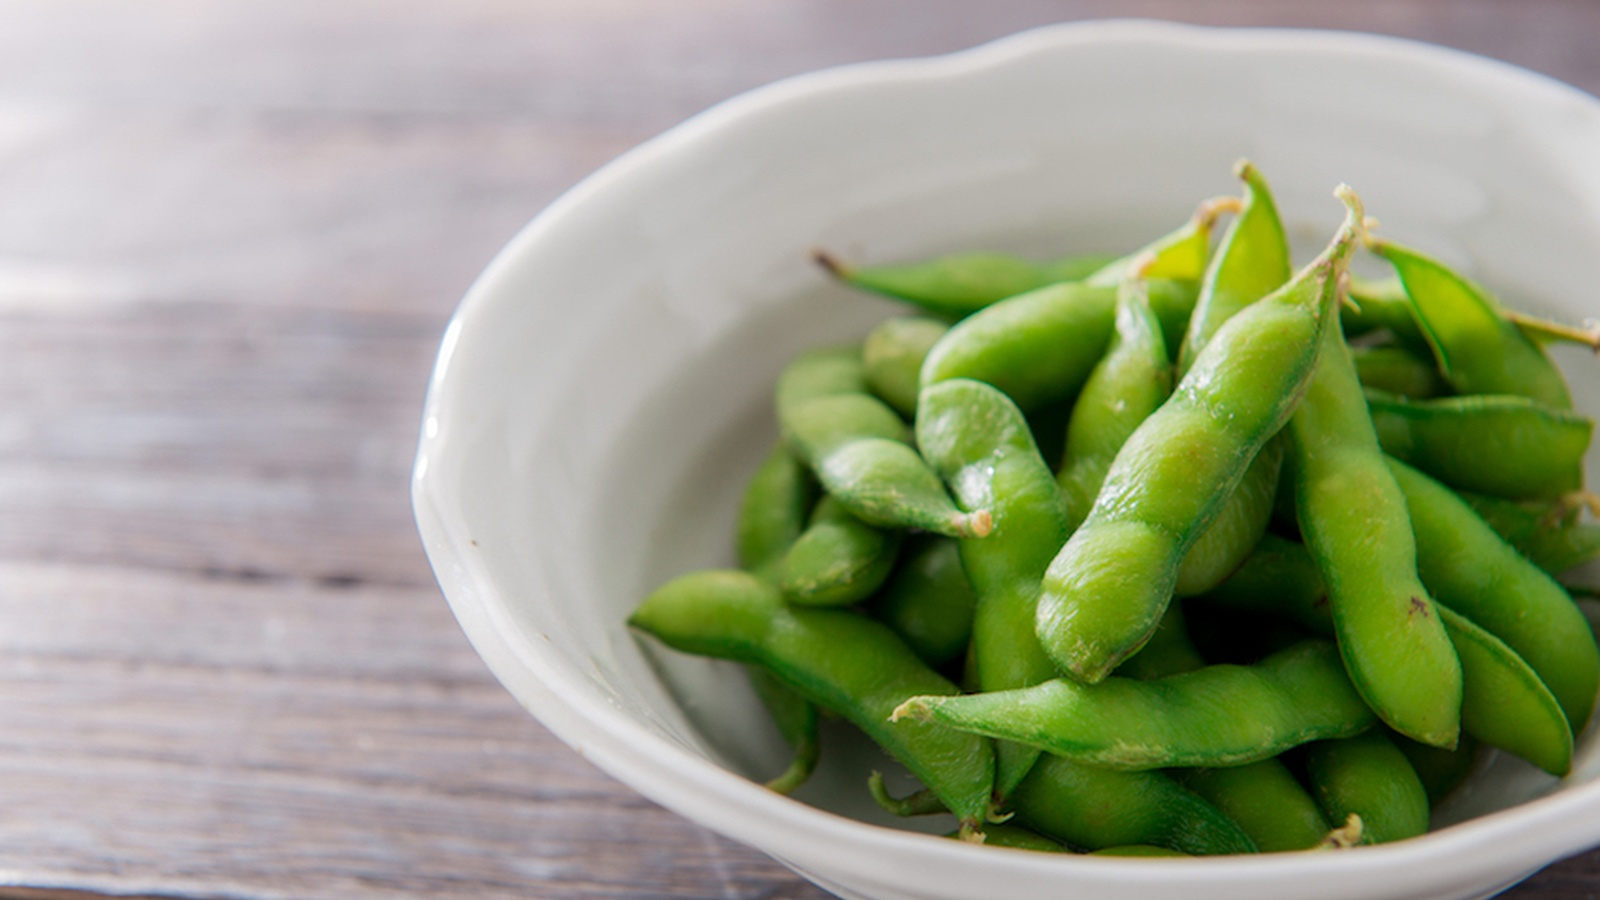 Edamame: When Green and Natural Doesn't Equal Healthy